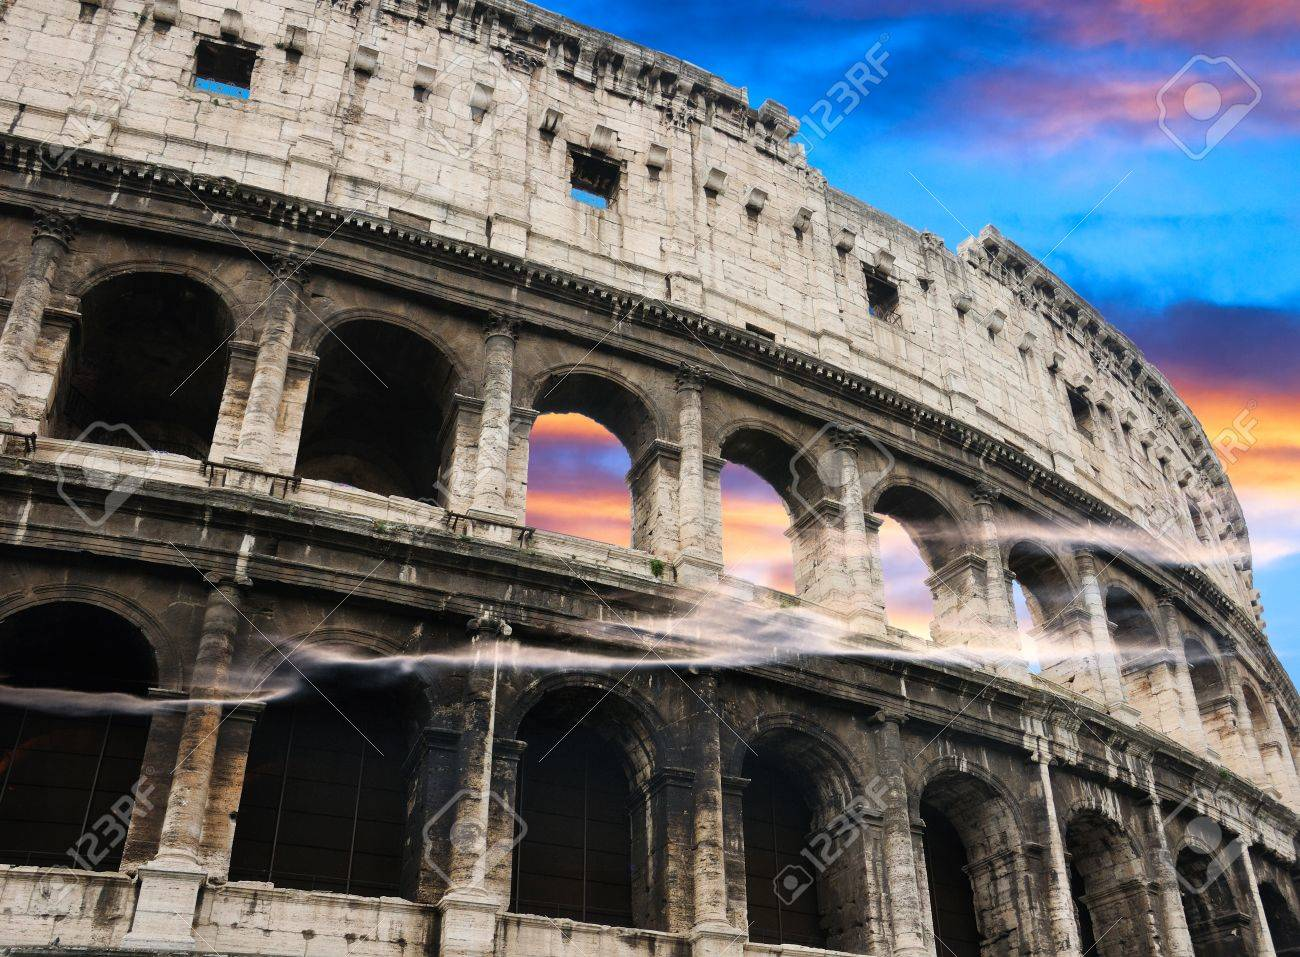 Colosseum aover dramatic sky background, Rome, Italy Stock Photo - 11975003